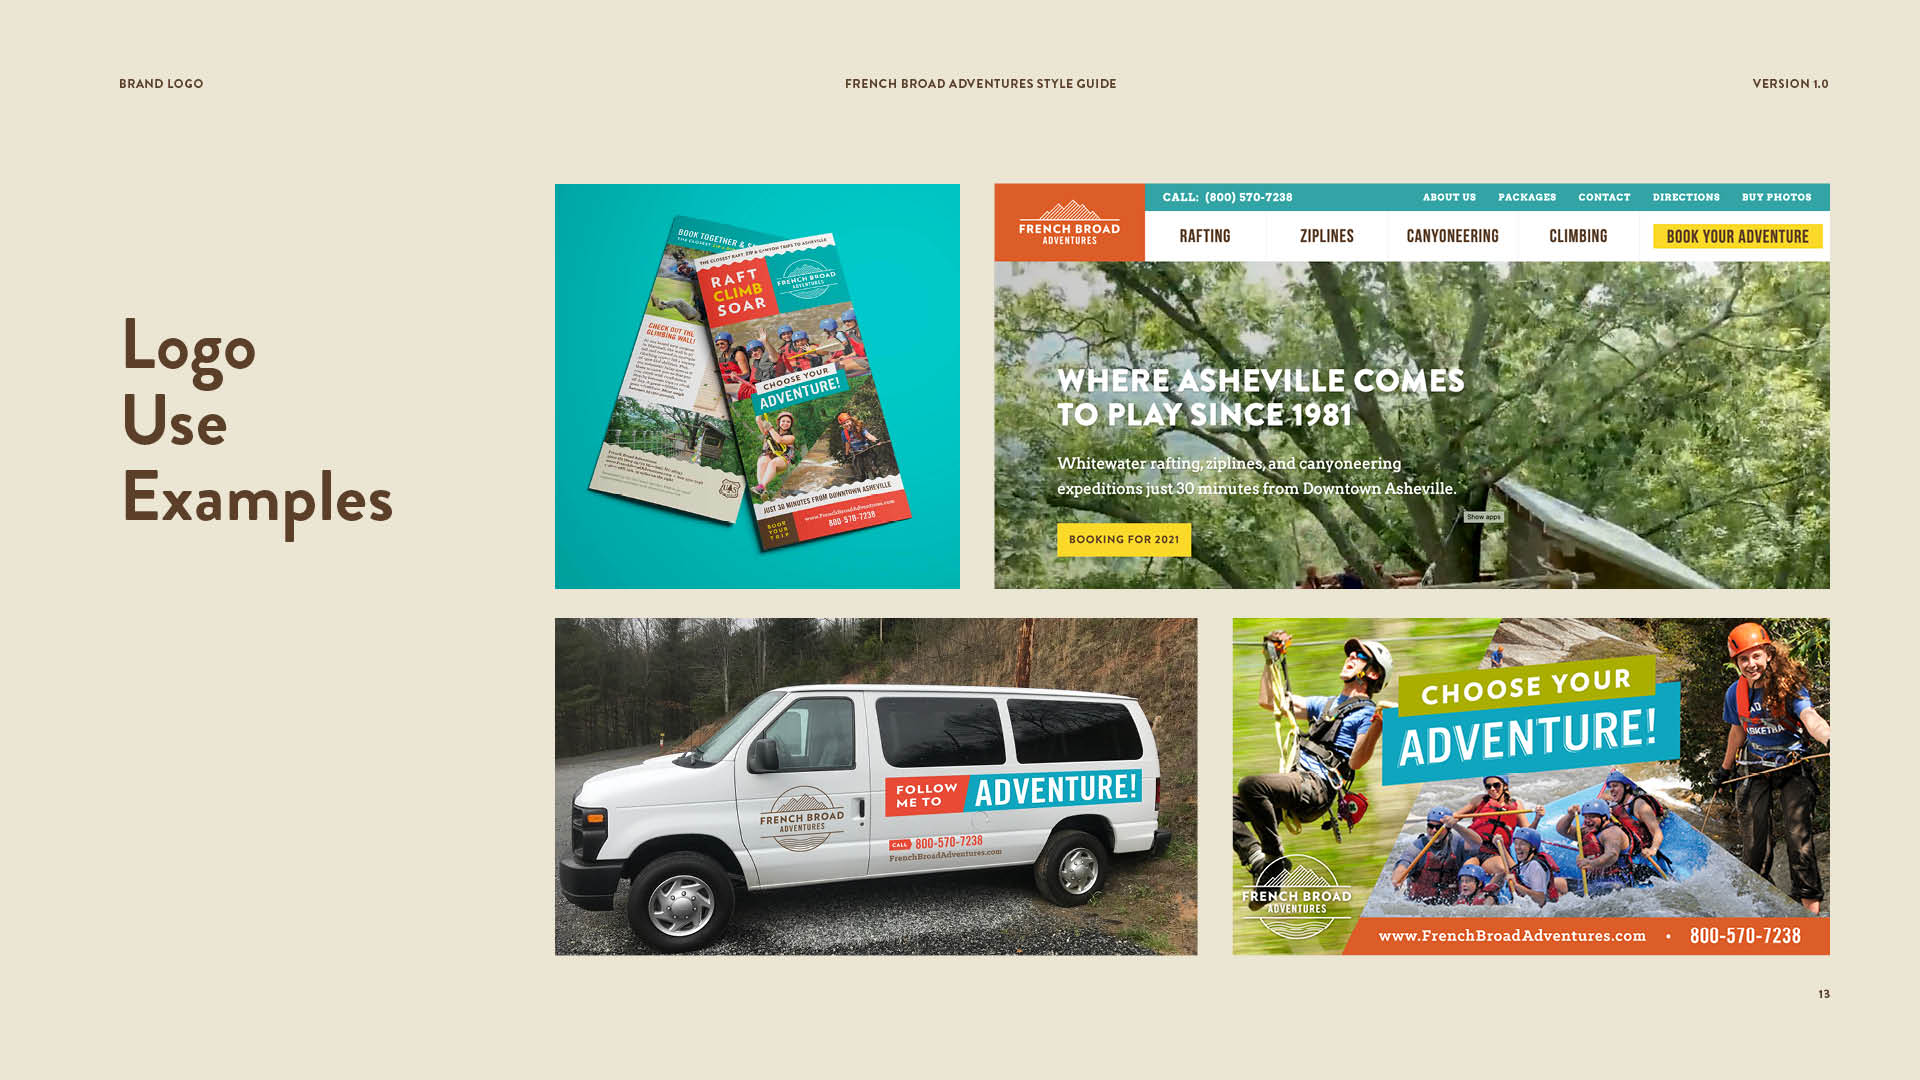 French Broad Adventures logos in use